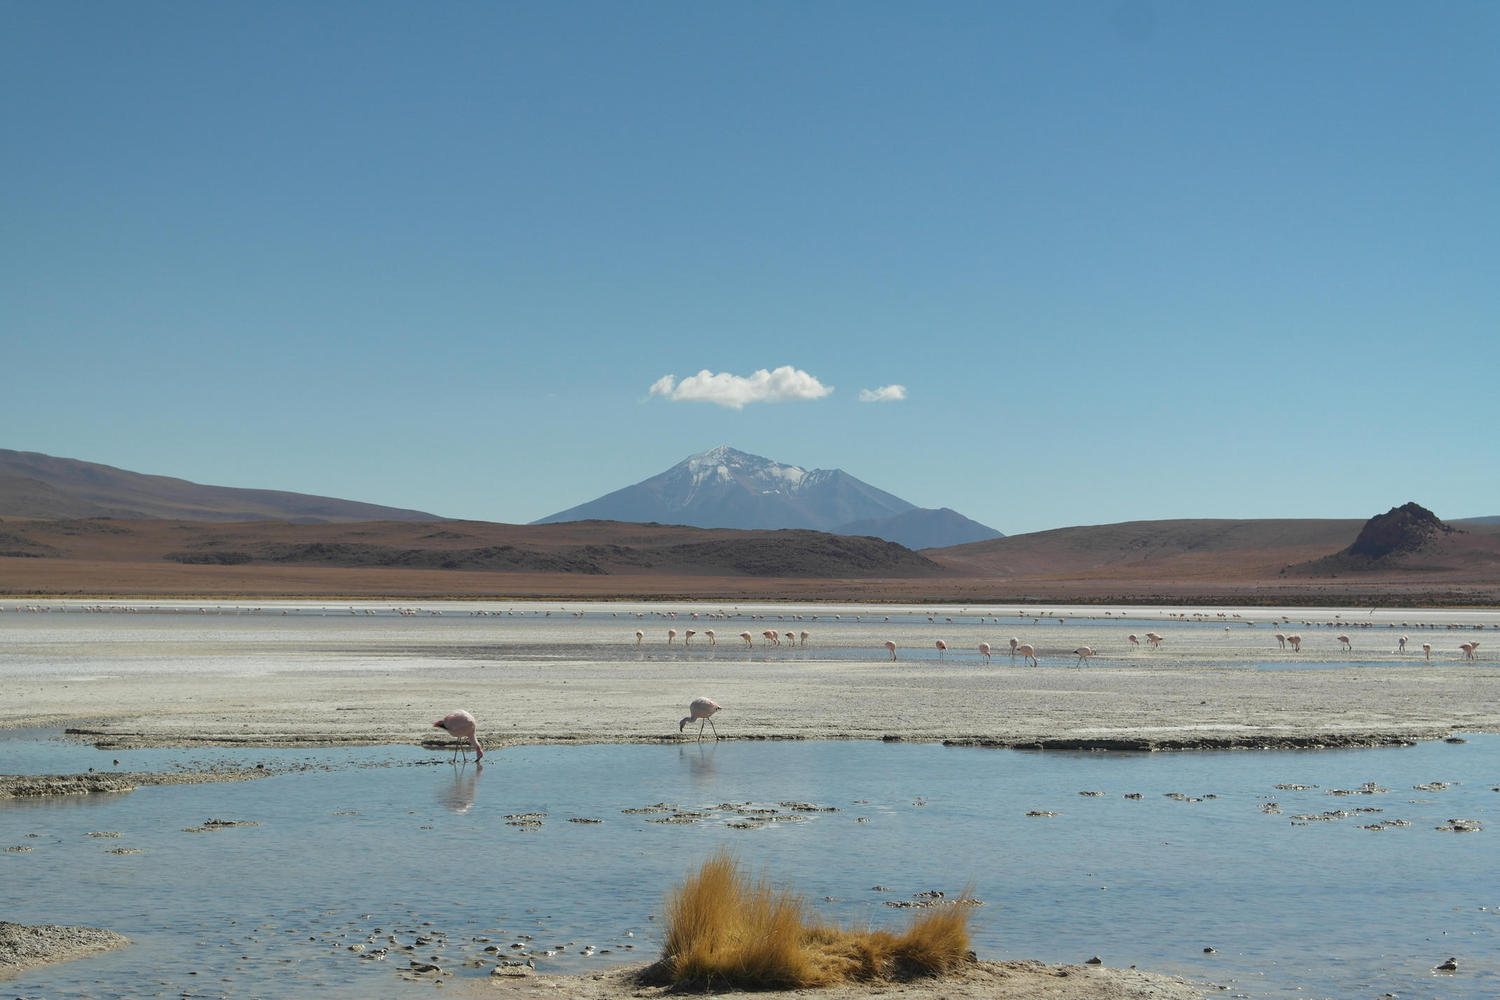 Incongruous flamingos are found throughout the near-empty altiplano of northern Chile.